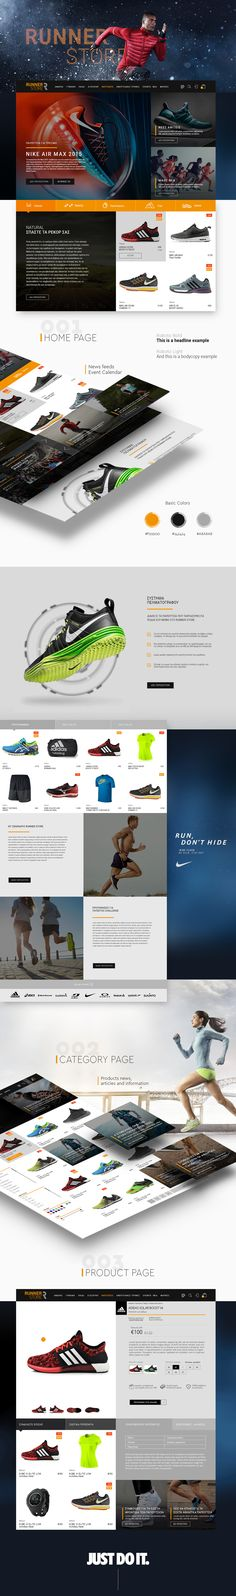 RUNNER STORE Graphic Design, UI/UX, Web Design.  The aim is to create a modern, aesthetic, clean and efficient thematic e-shop where the image and the whole philosophy right will be displayed.